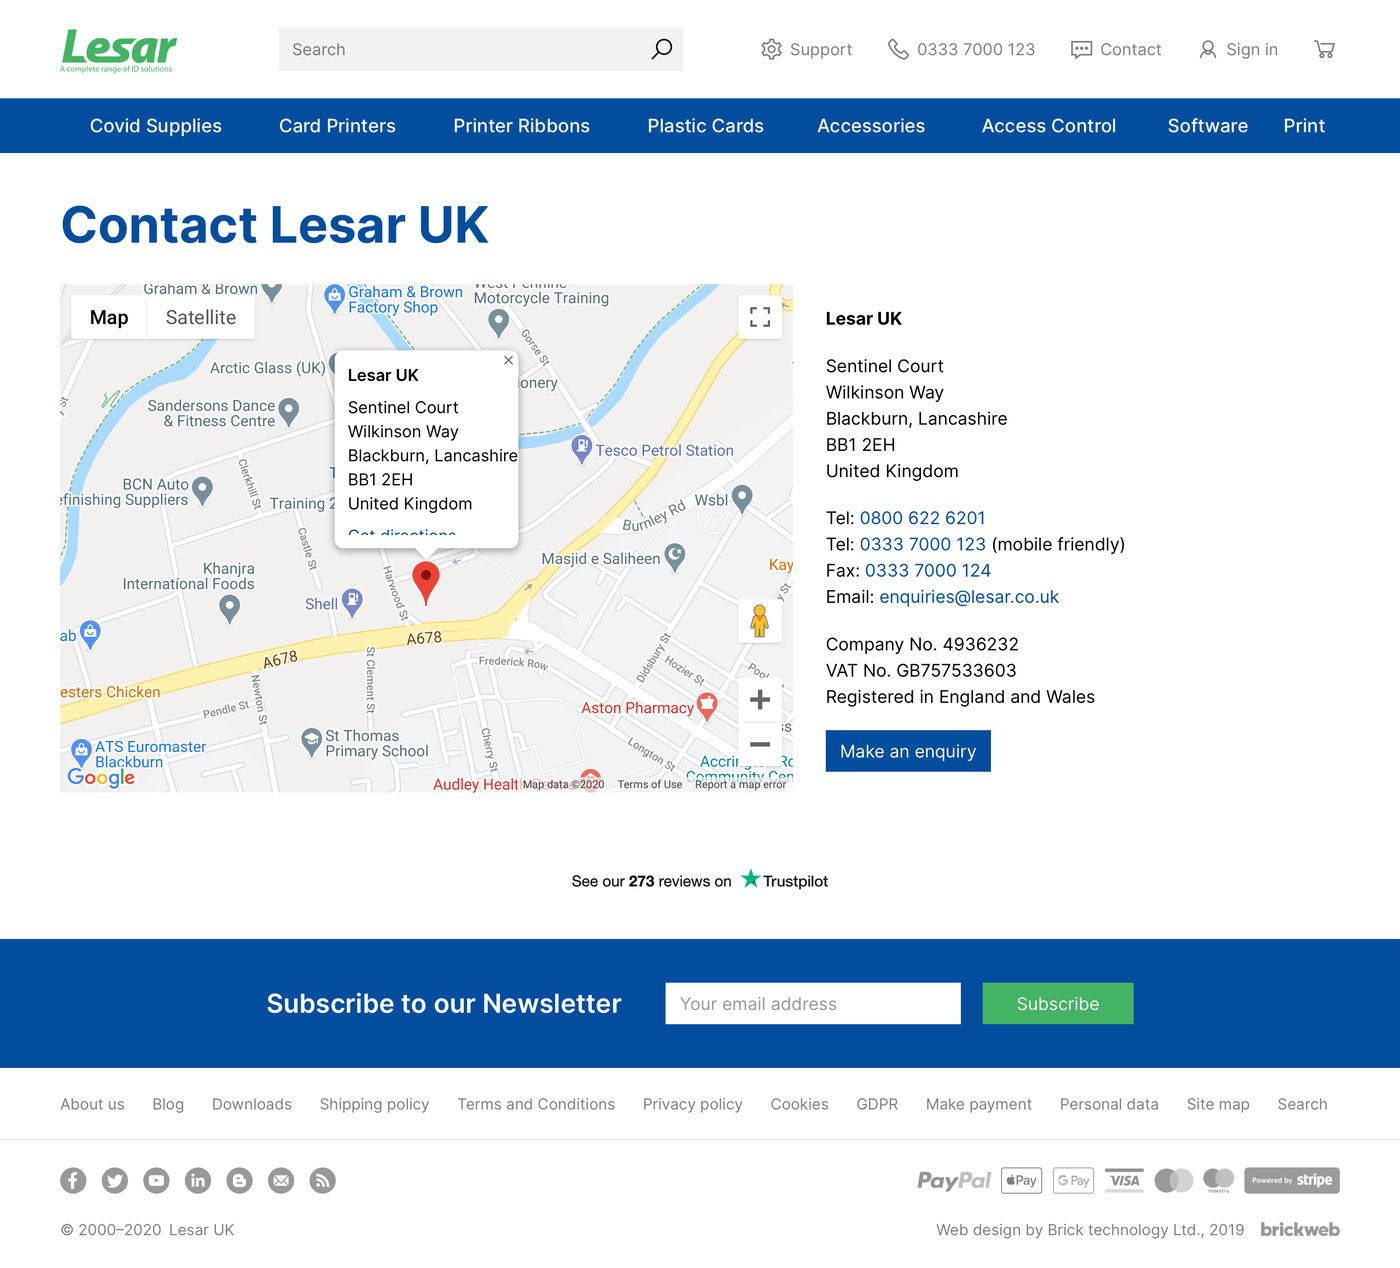 Lesar UK Contact us